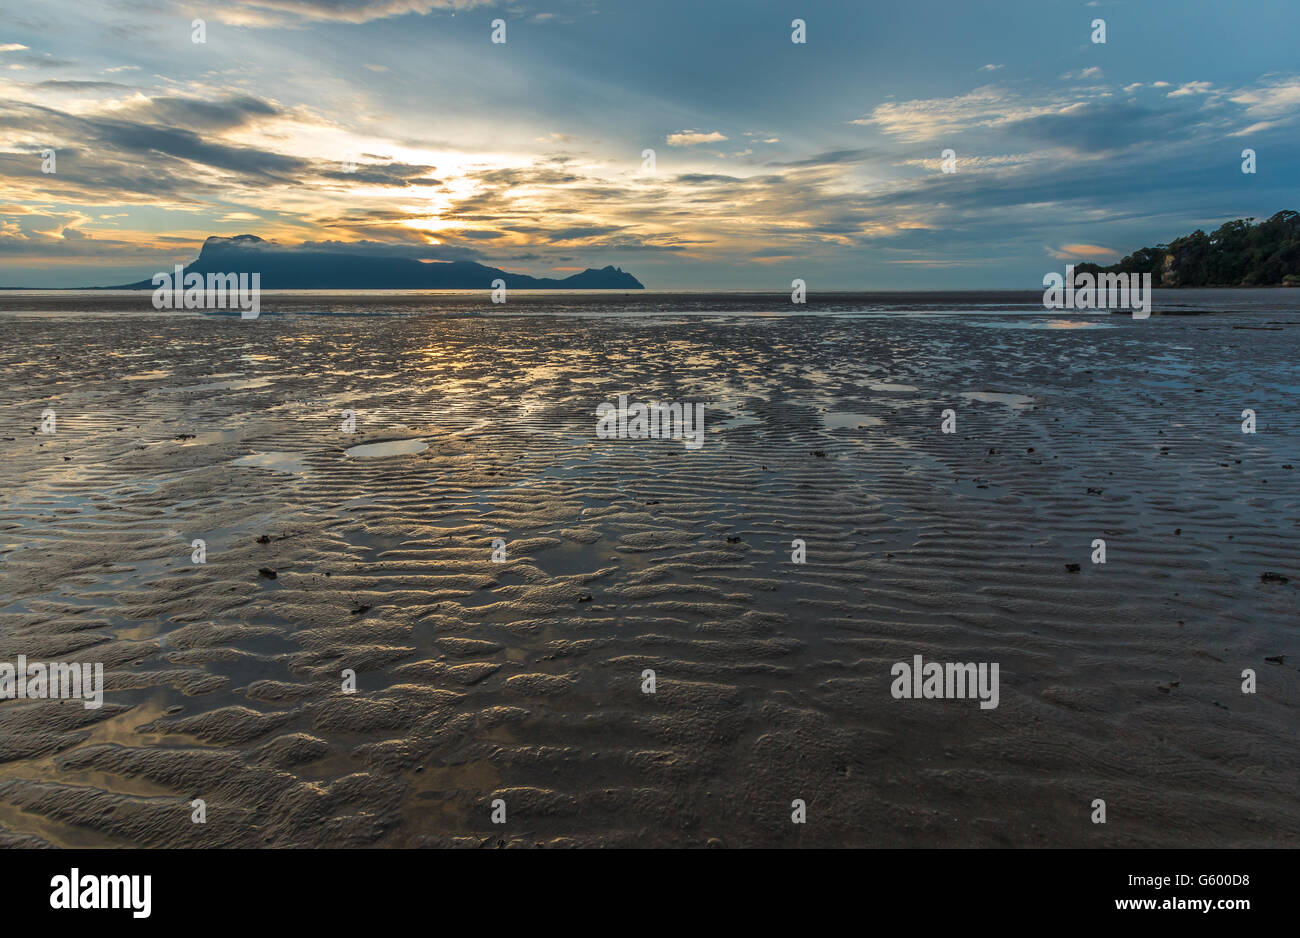 Calm, peaceful sunset view over the beach and South China Sea from Bako National Park, Sarawak, Borneo - Stock Image